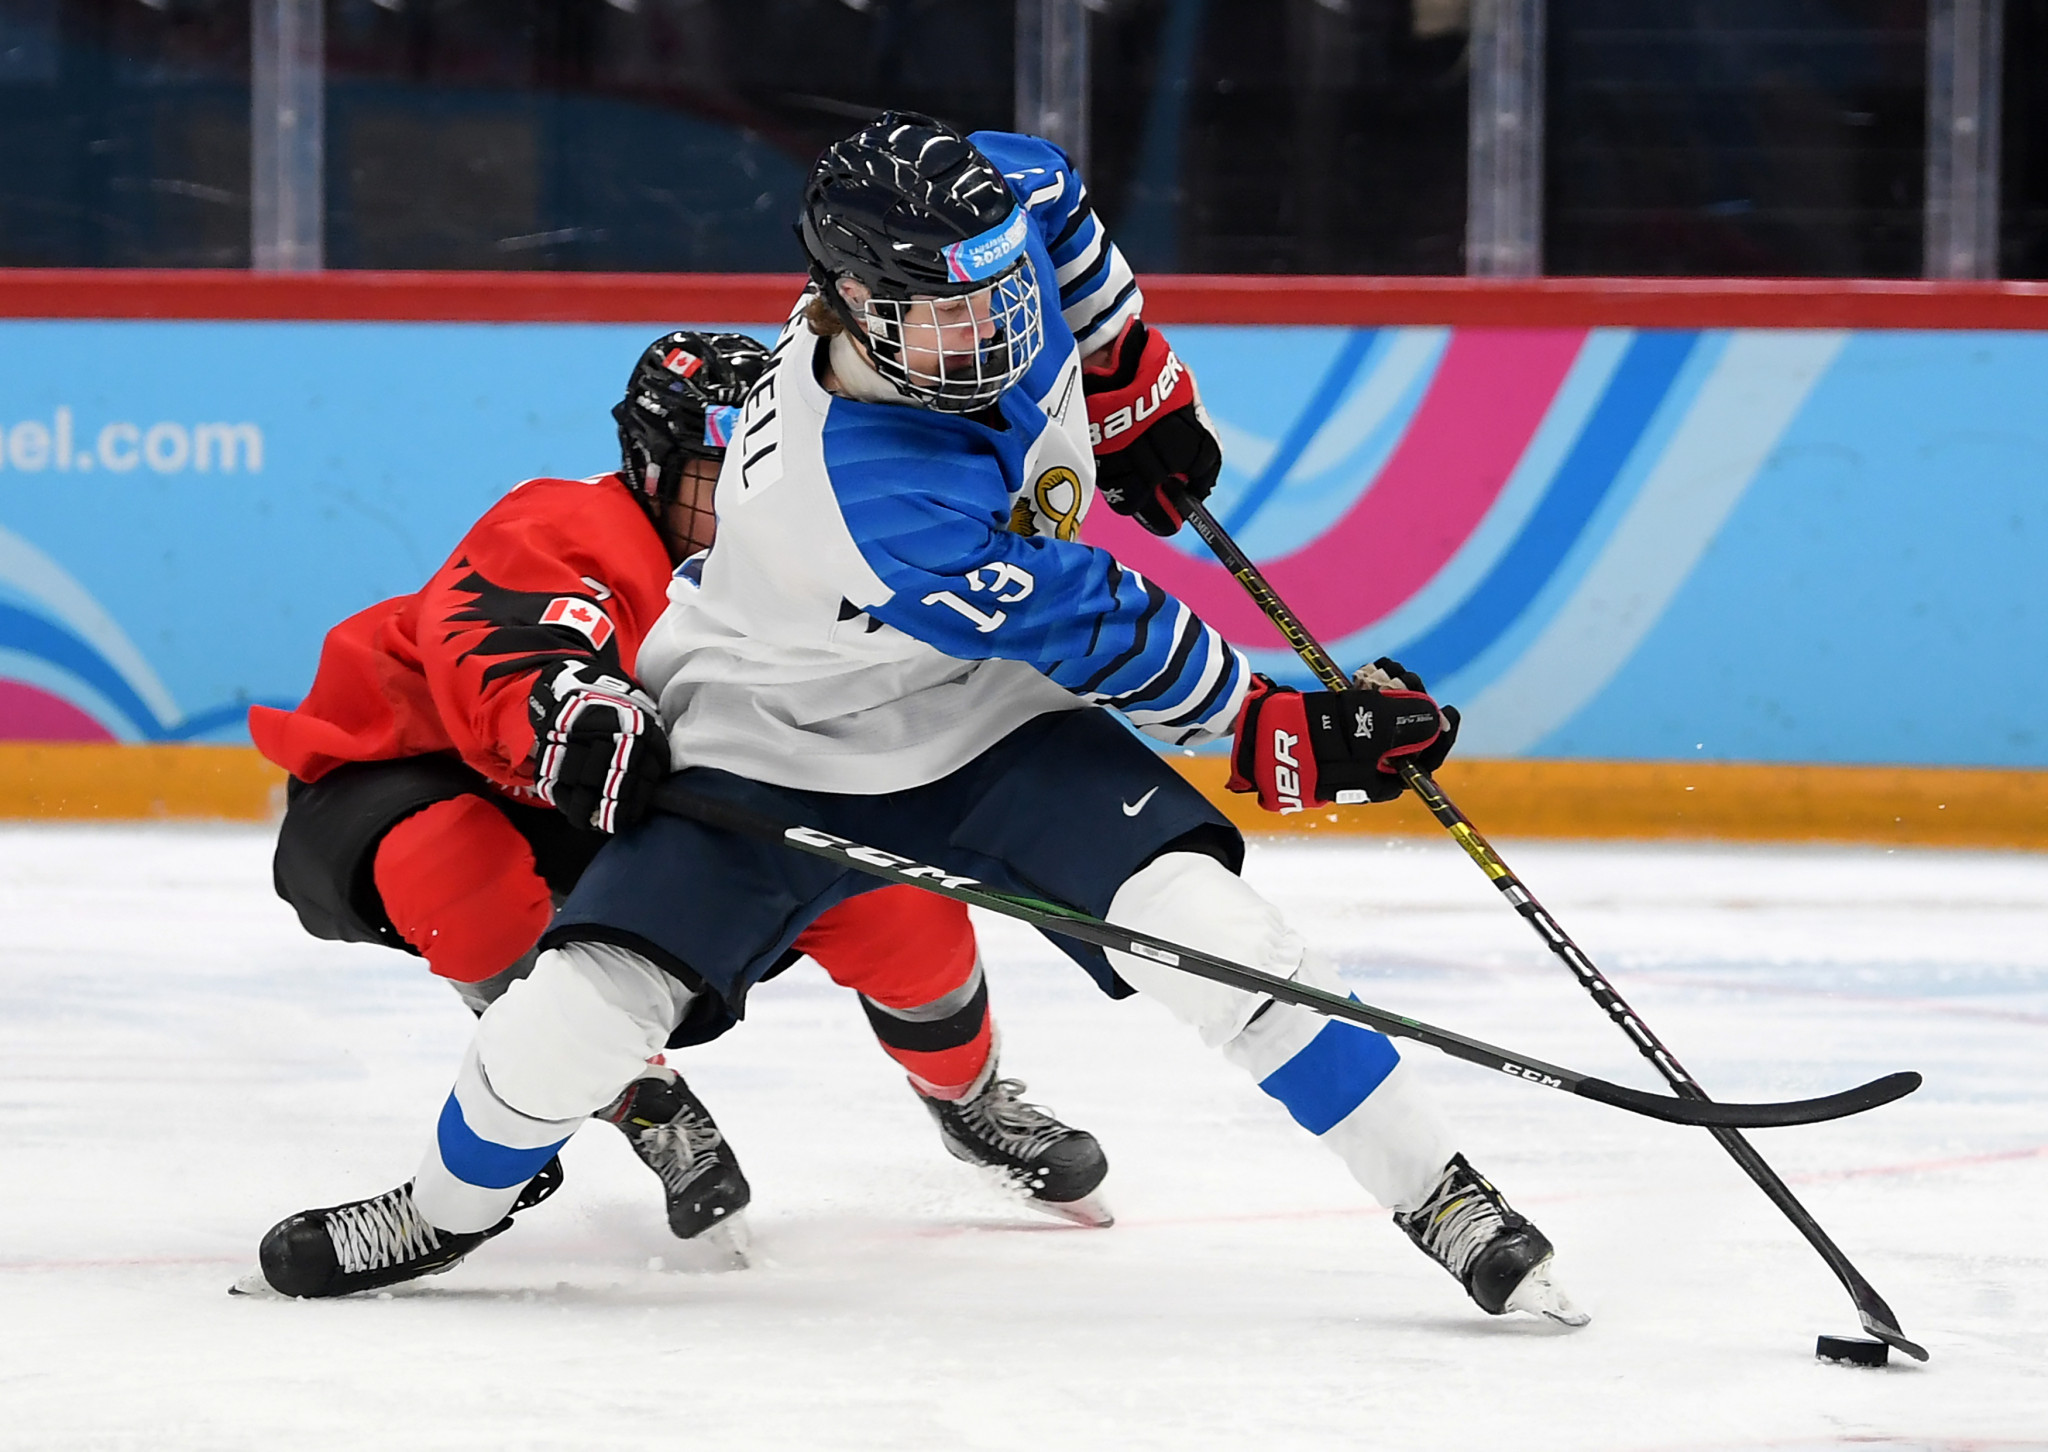 FISU selects countries for ice hockey and curling contests at Lucerne 2021